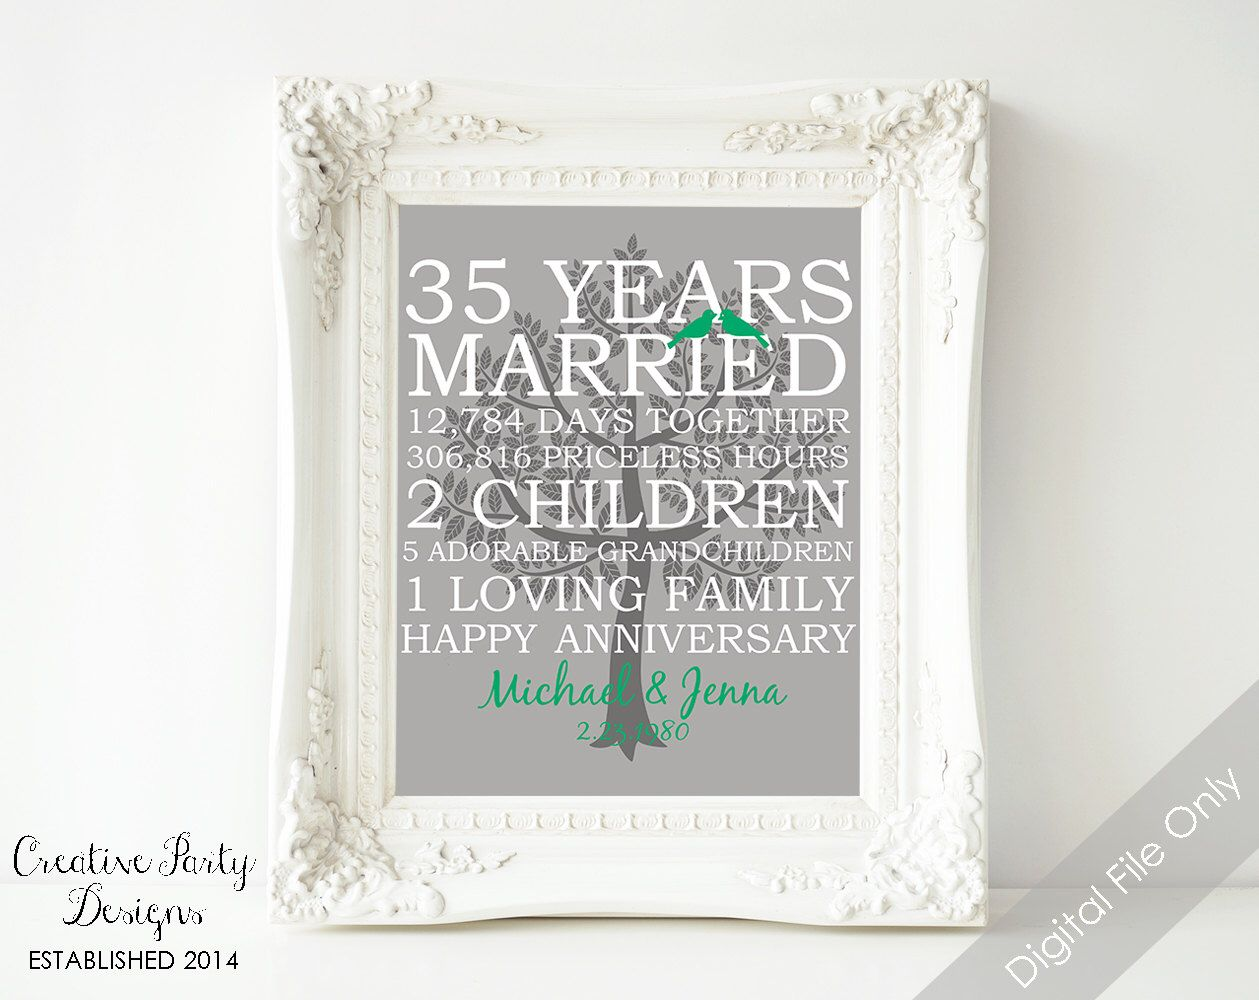 35th Wedding Anniversary Gift - 35th Anniversary Print - Family Prints - Personalized Name Family Tree - Love Birds - Home Decor Wall Art